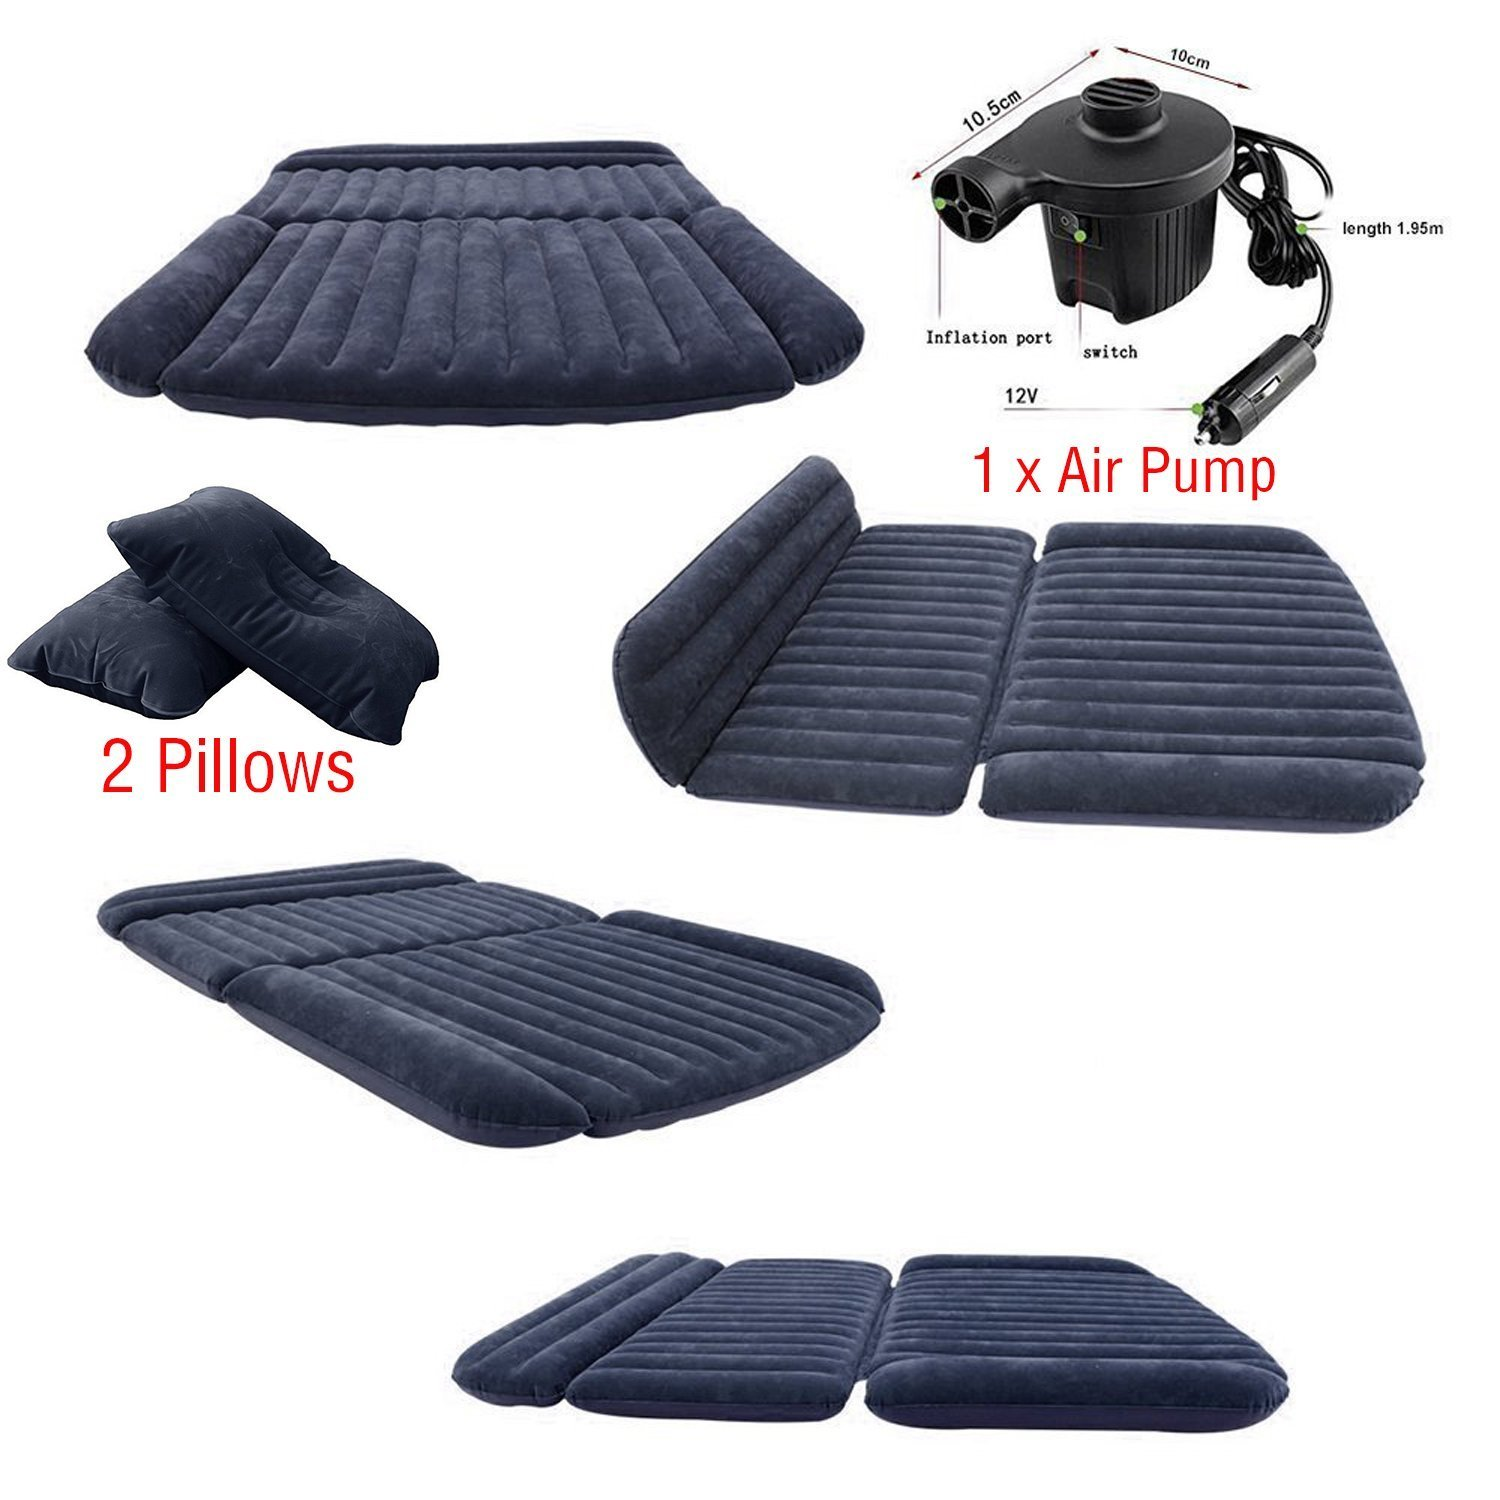 Lightweight sleeping pad self inflatable pad Swimming pool floating pad Maximum Insulation using Special Air Tube Design for Camping sleeping mat nflatable Sleeping Pad with Built In Pump